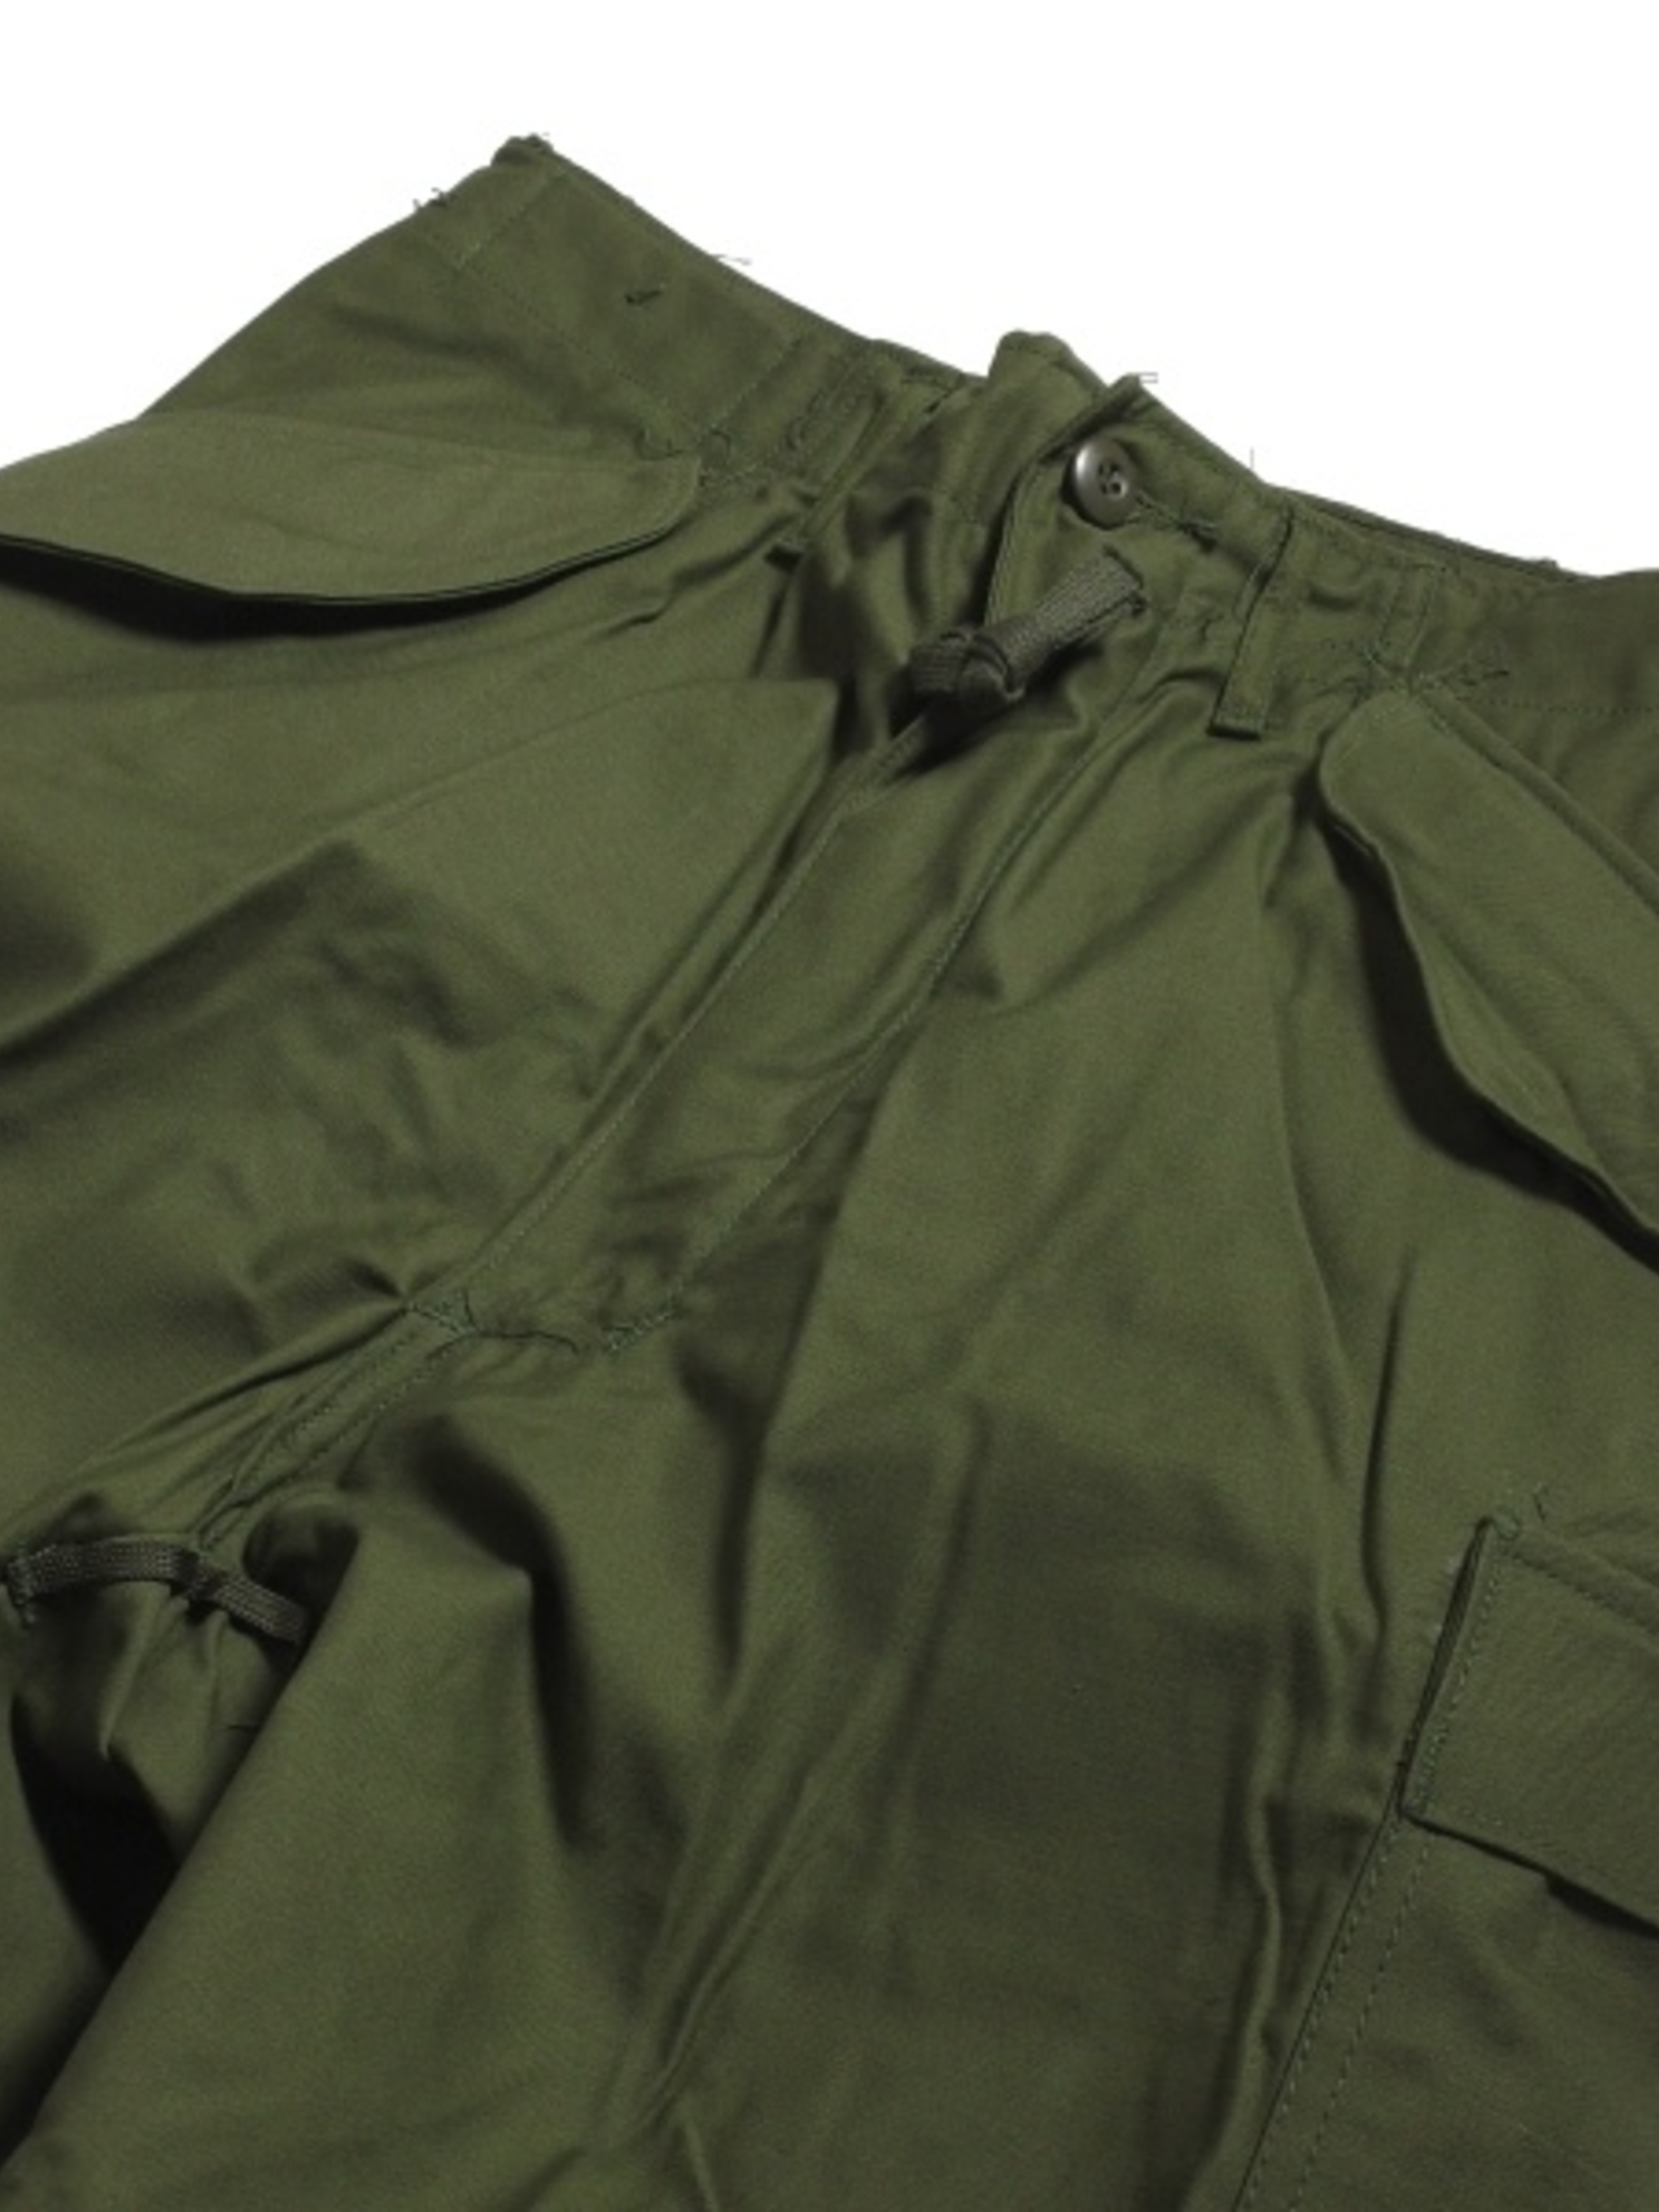 DEADSTOCK US ARMY M-65 PANTS OLIVE